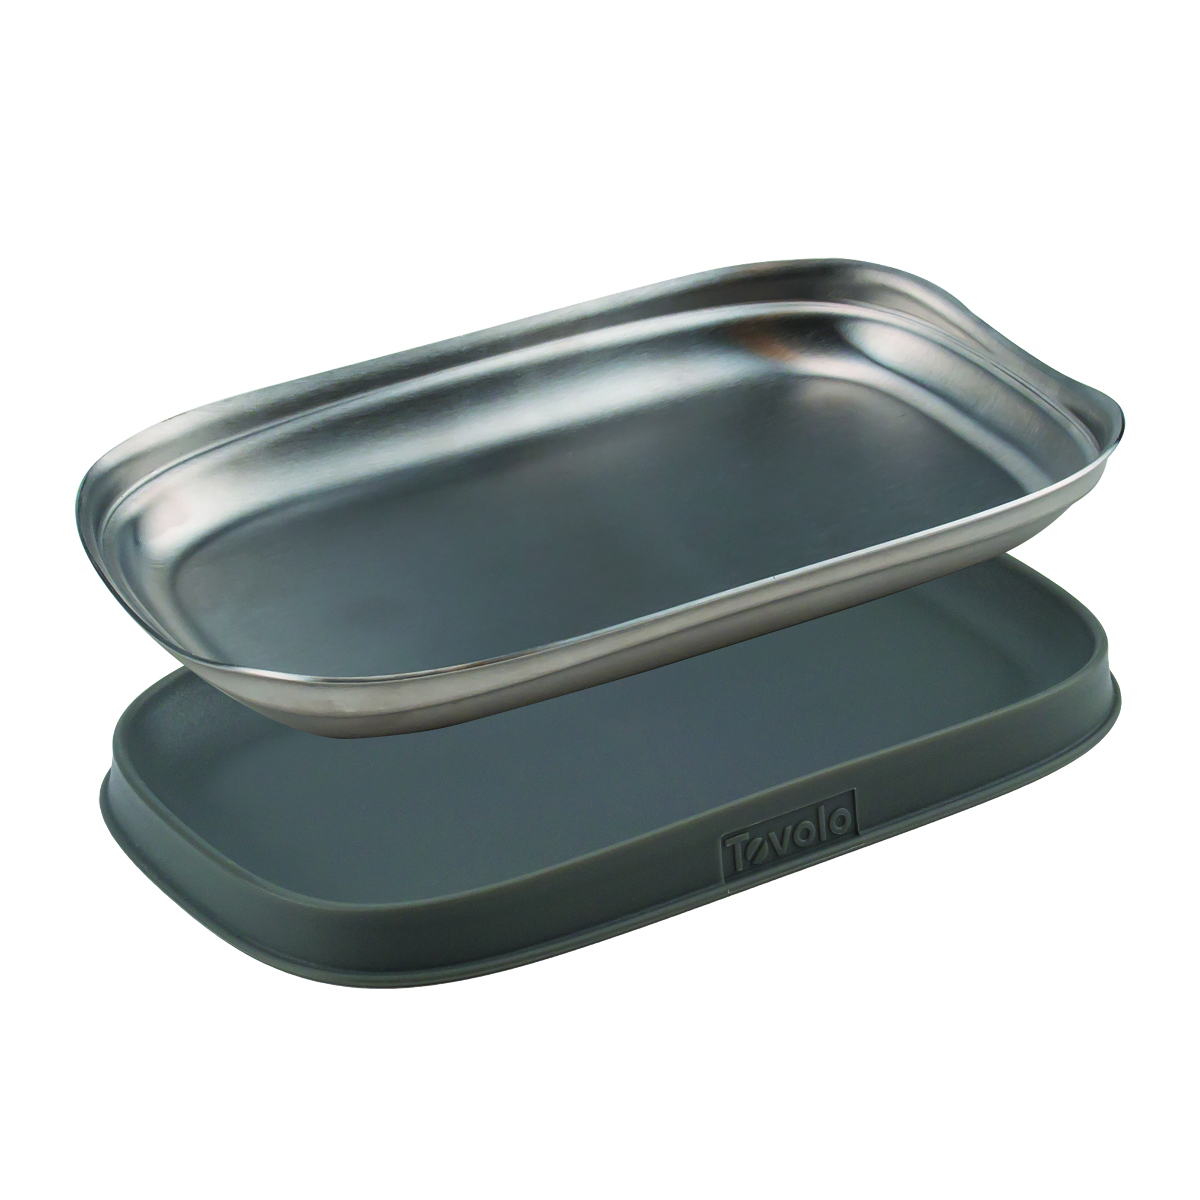 Tovolo Stainless Steel Double Spoon Rest